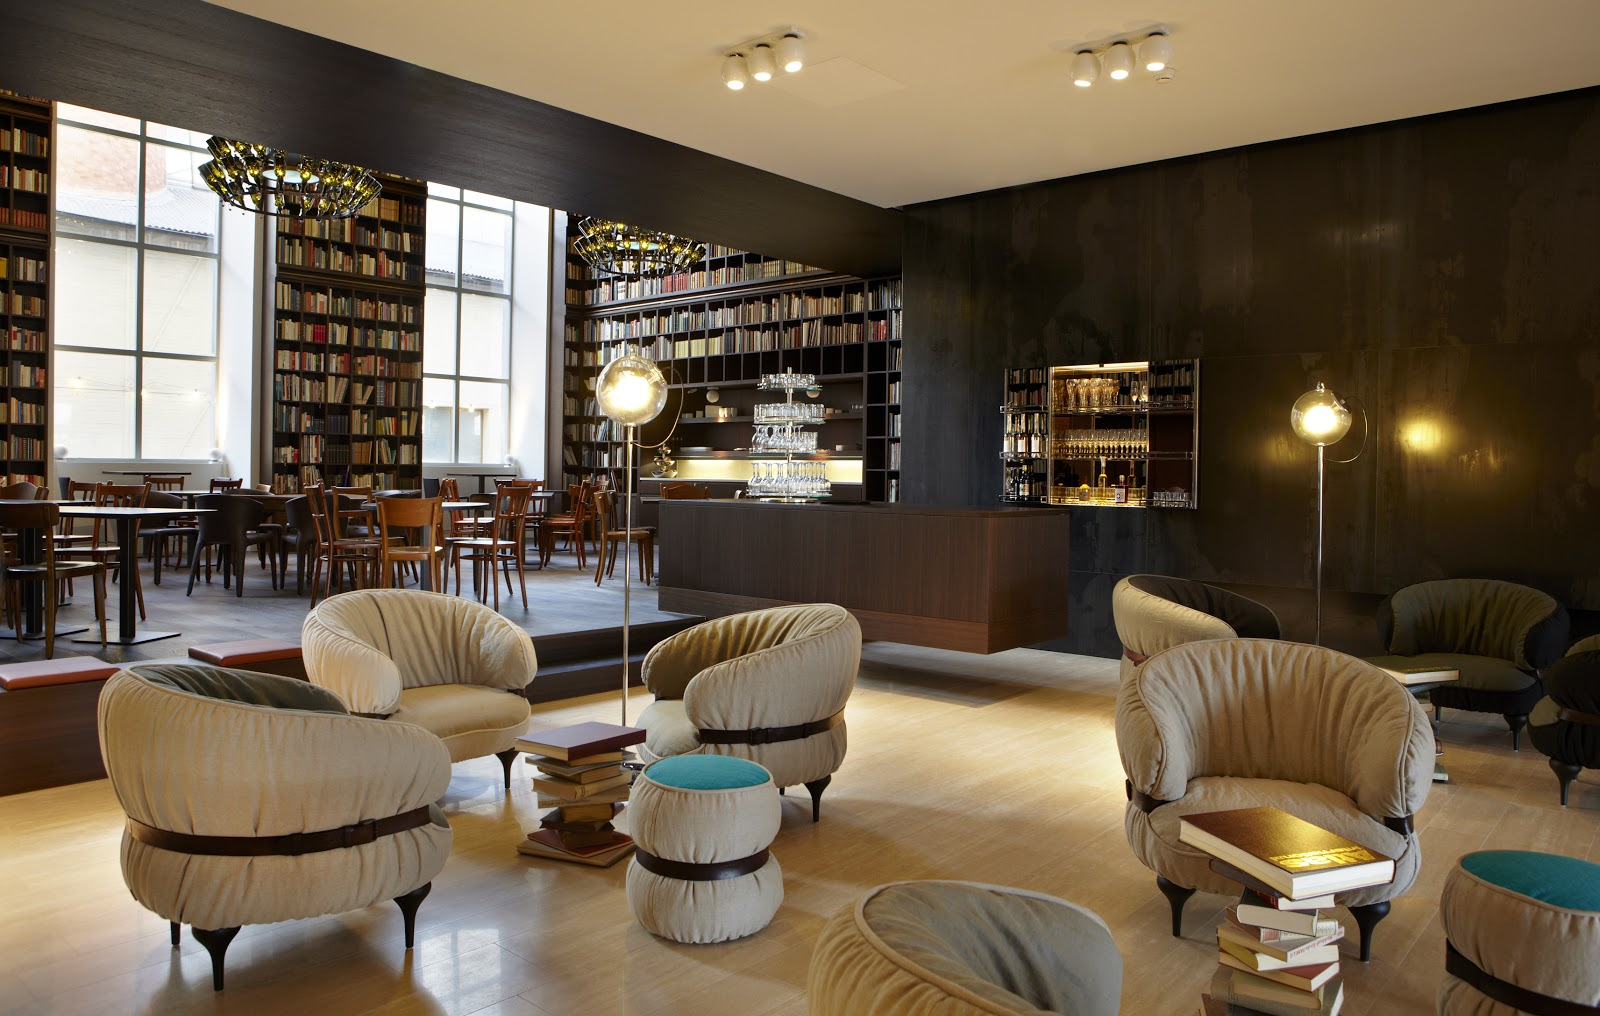 Library Lounge B2 Boutique Hotel Zurich Book Patrol A